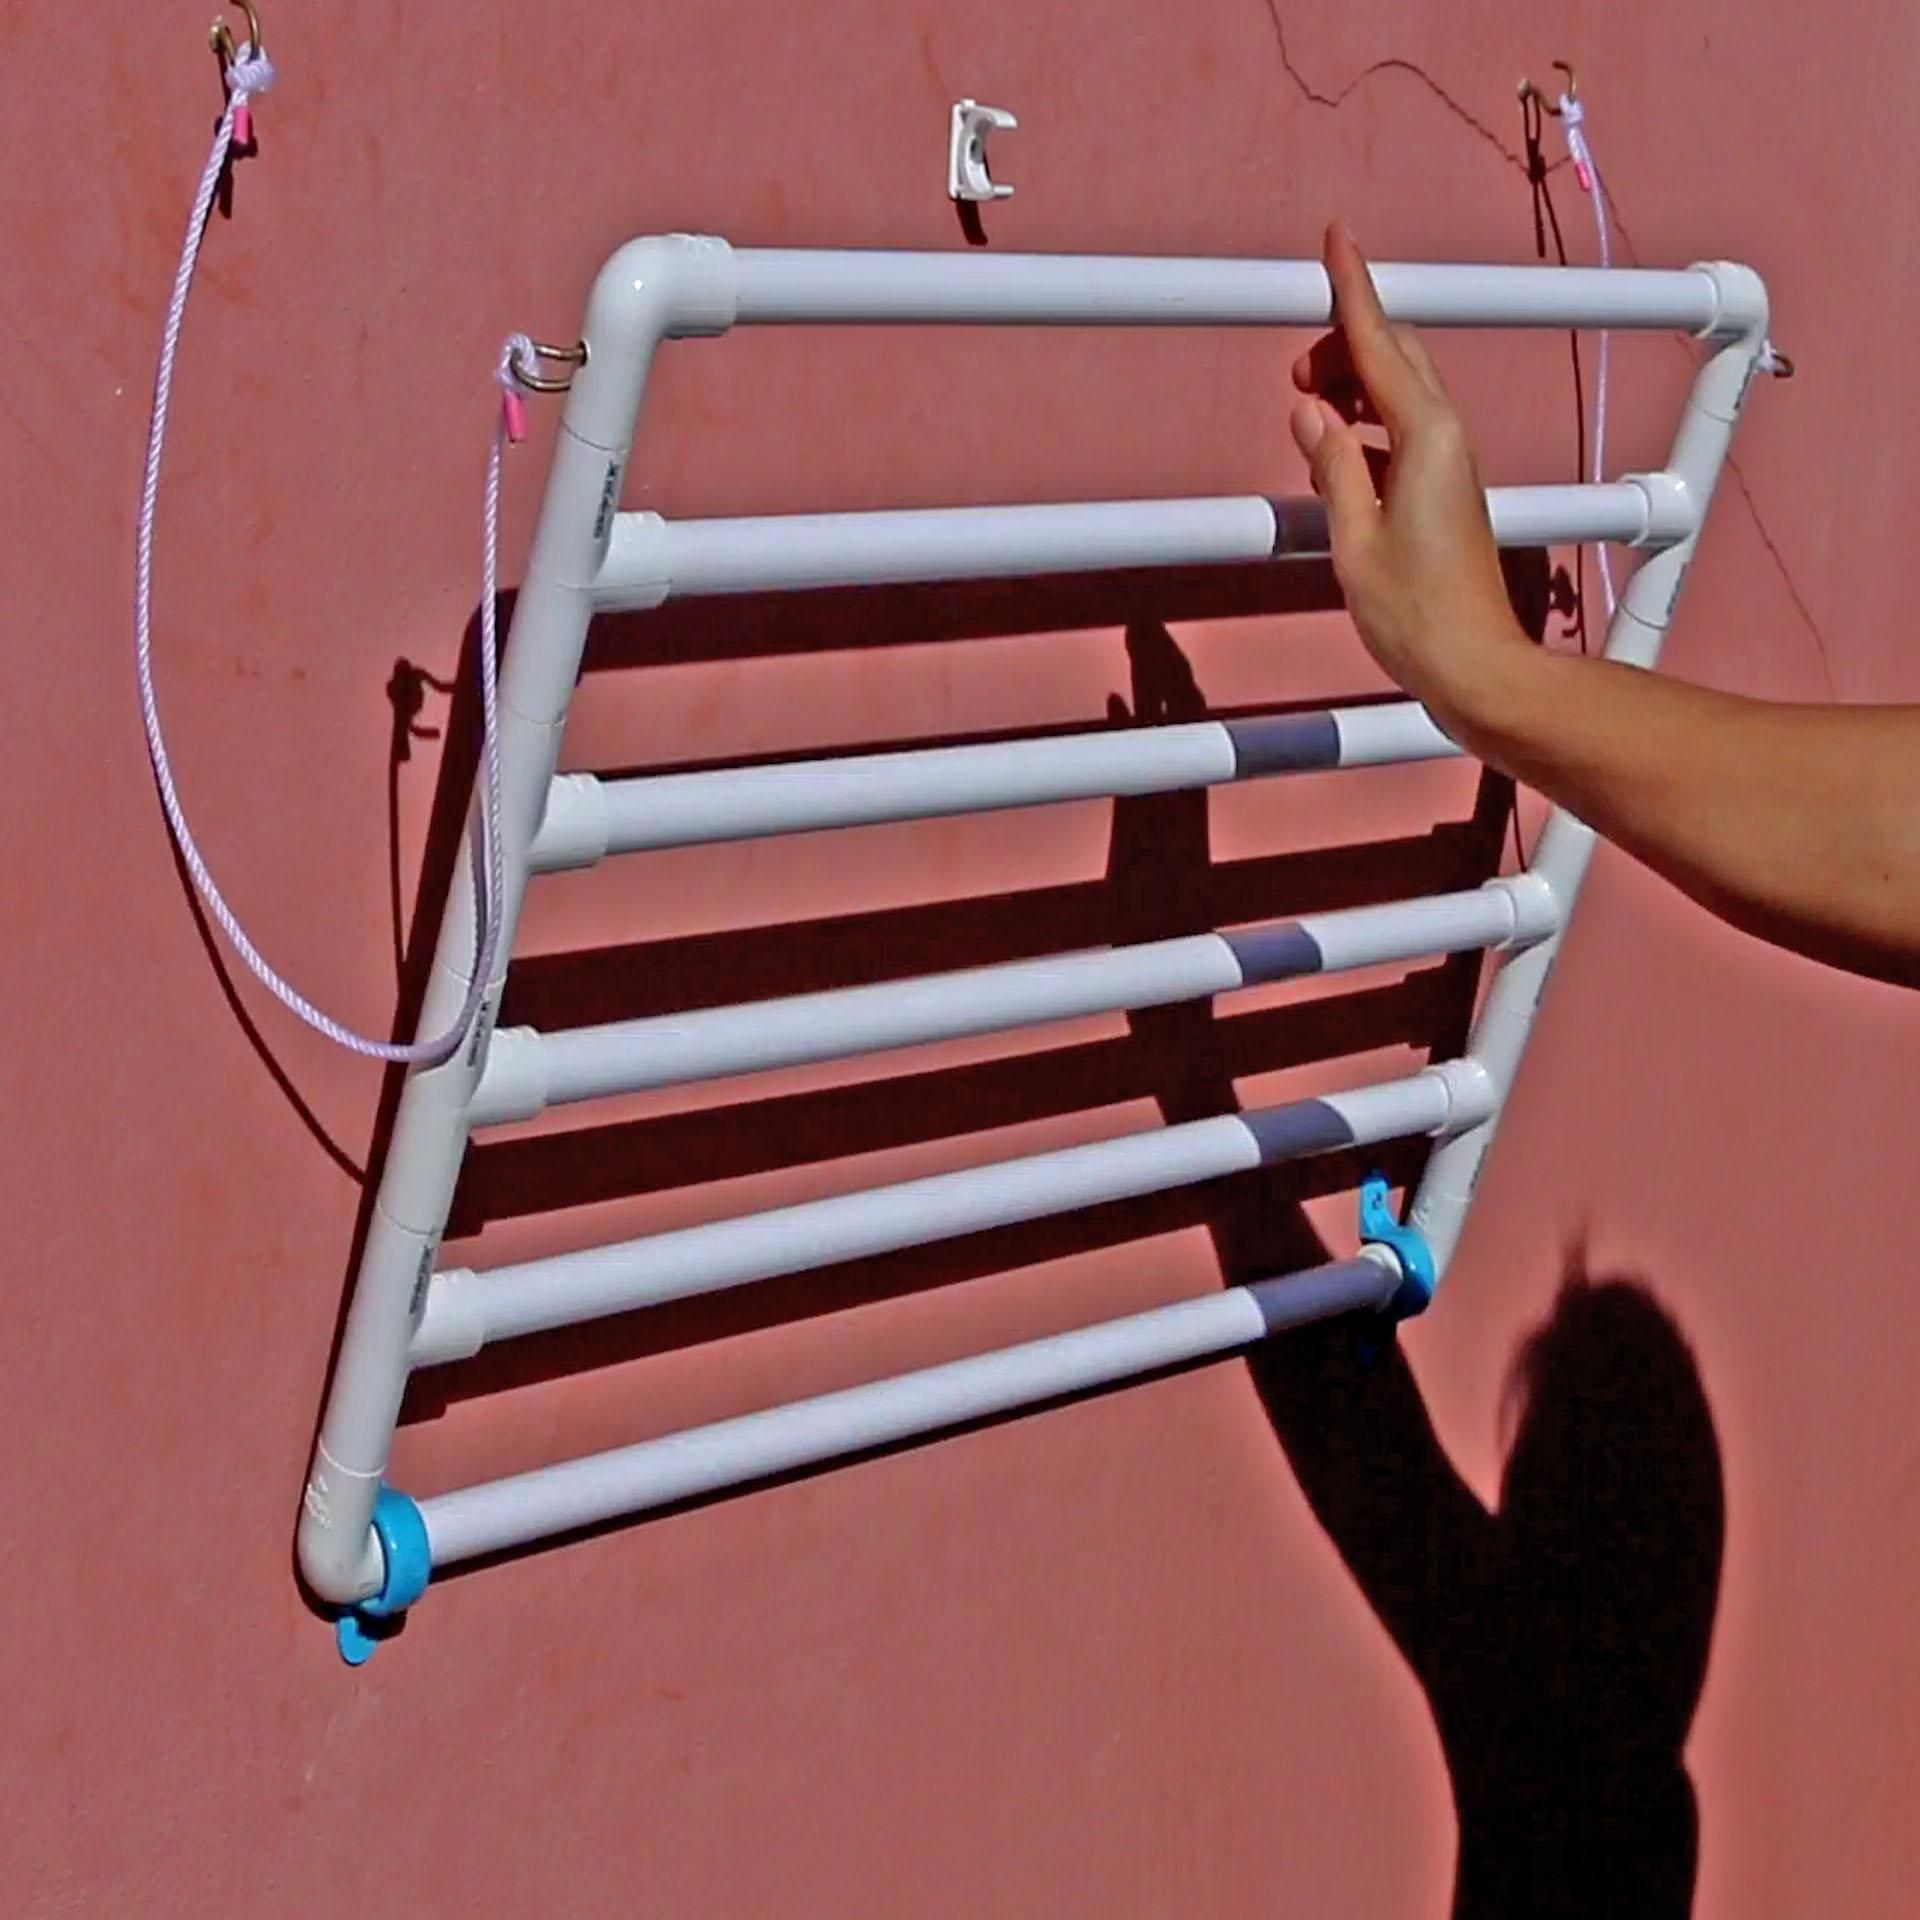 DIY How to make a collapsible towel rack